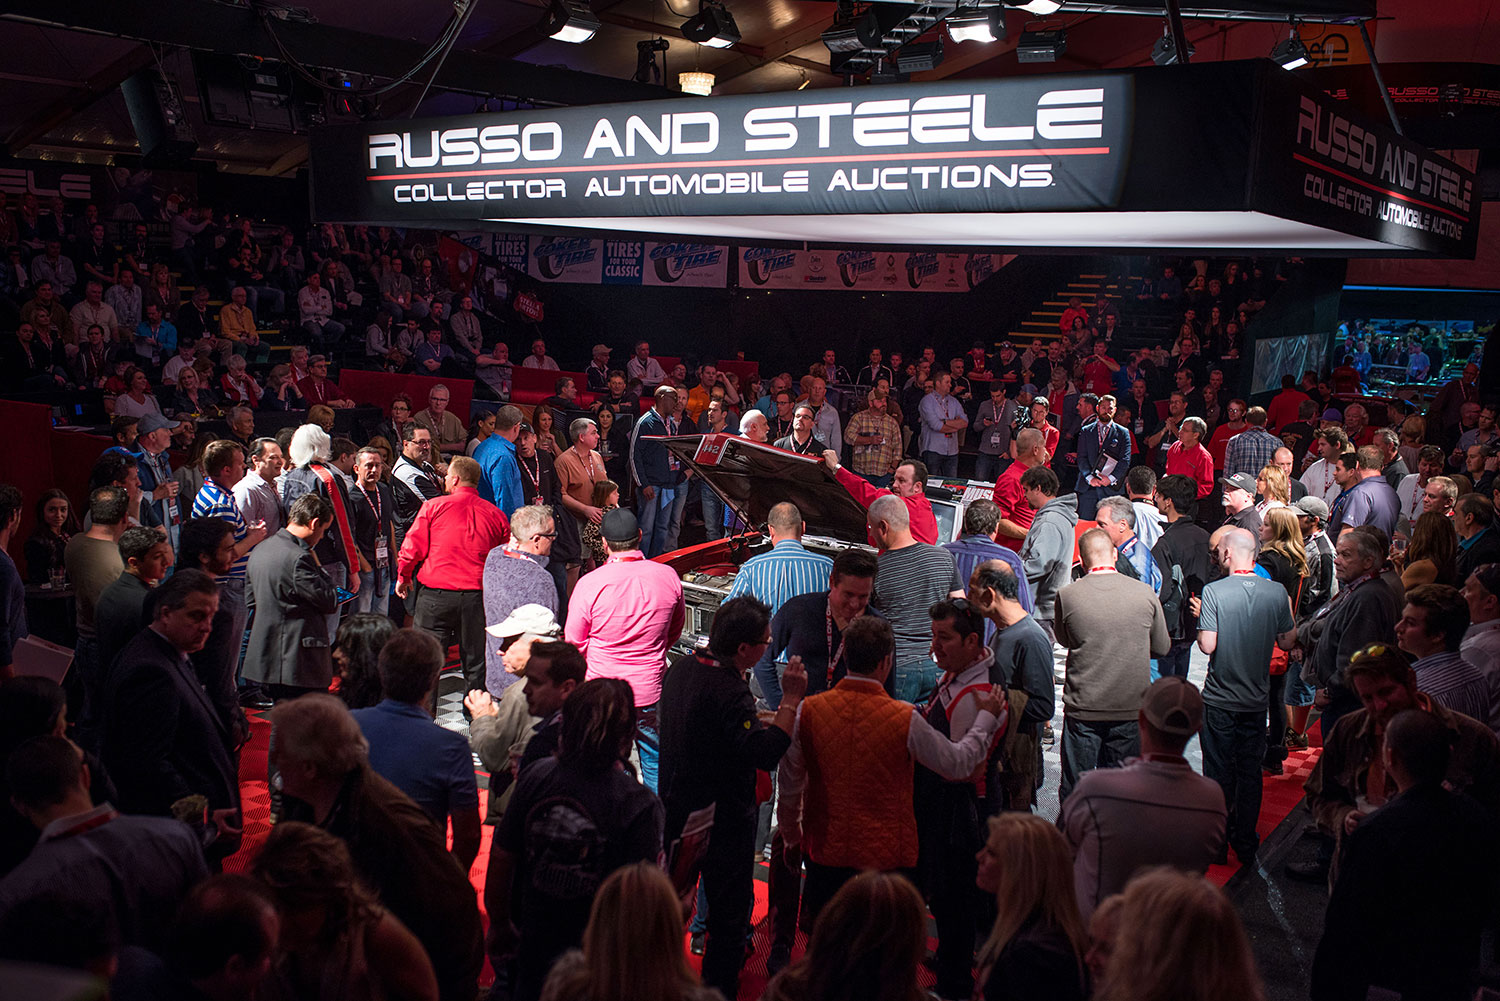 Russo and Steele Scottsdale auction